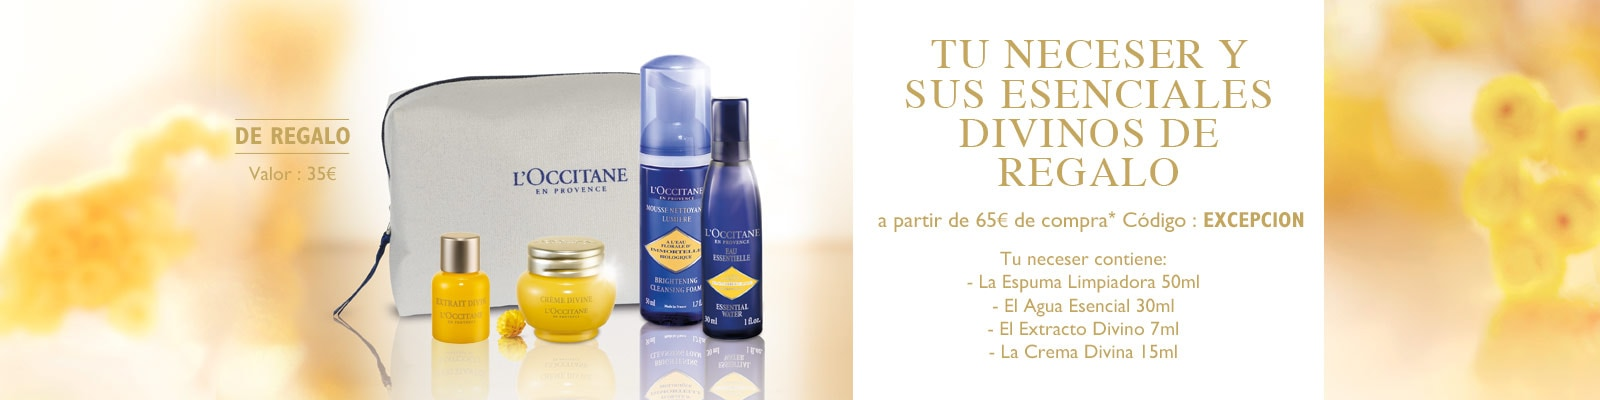 Grazia - L'Occitane France